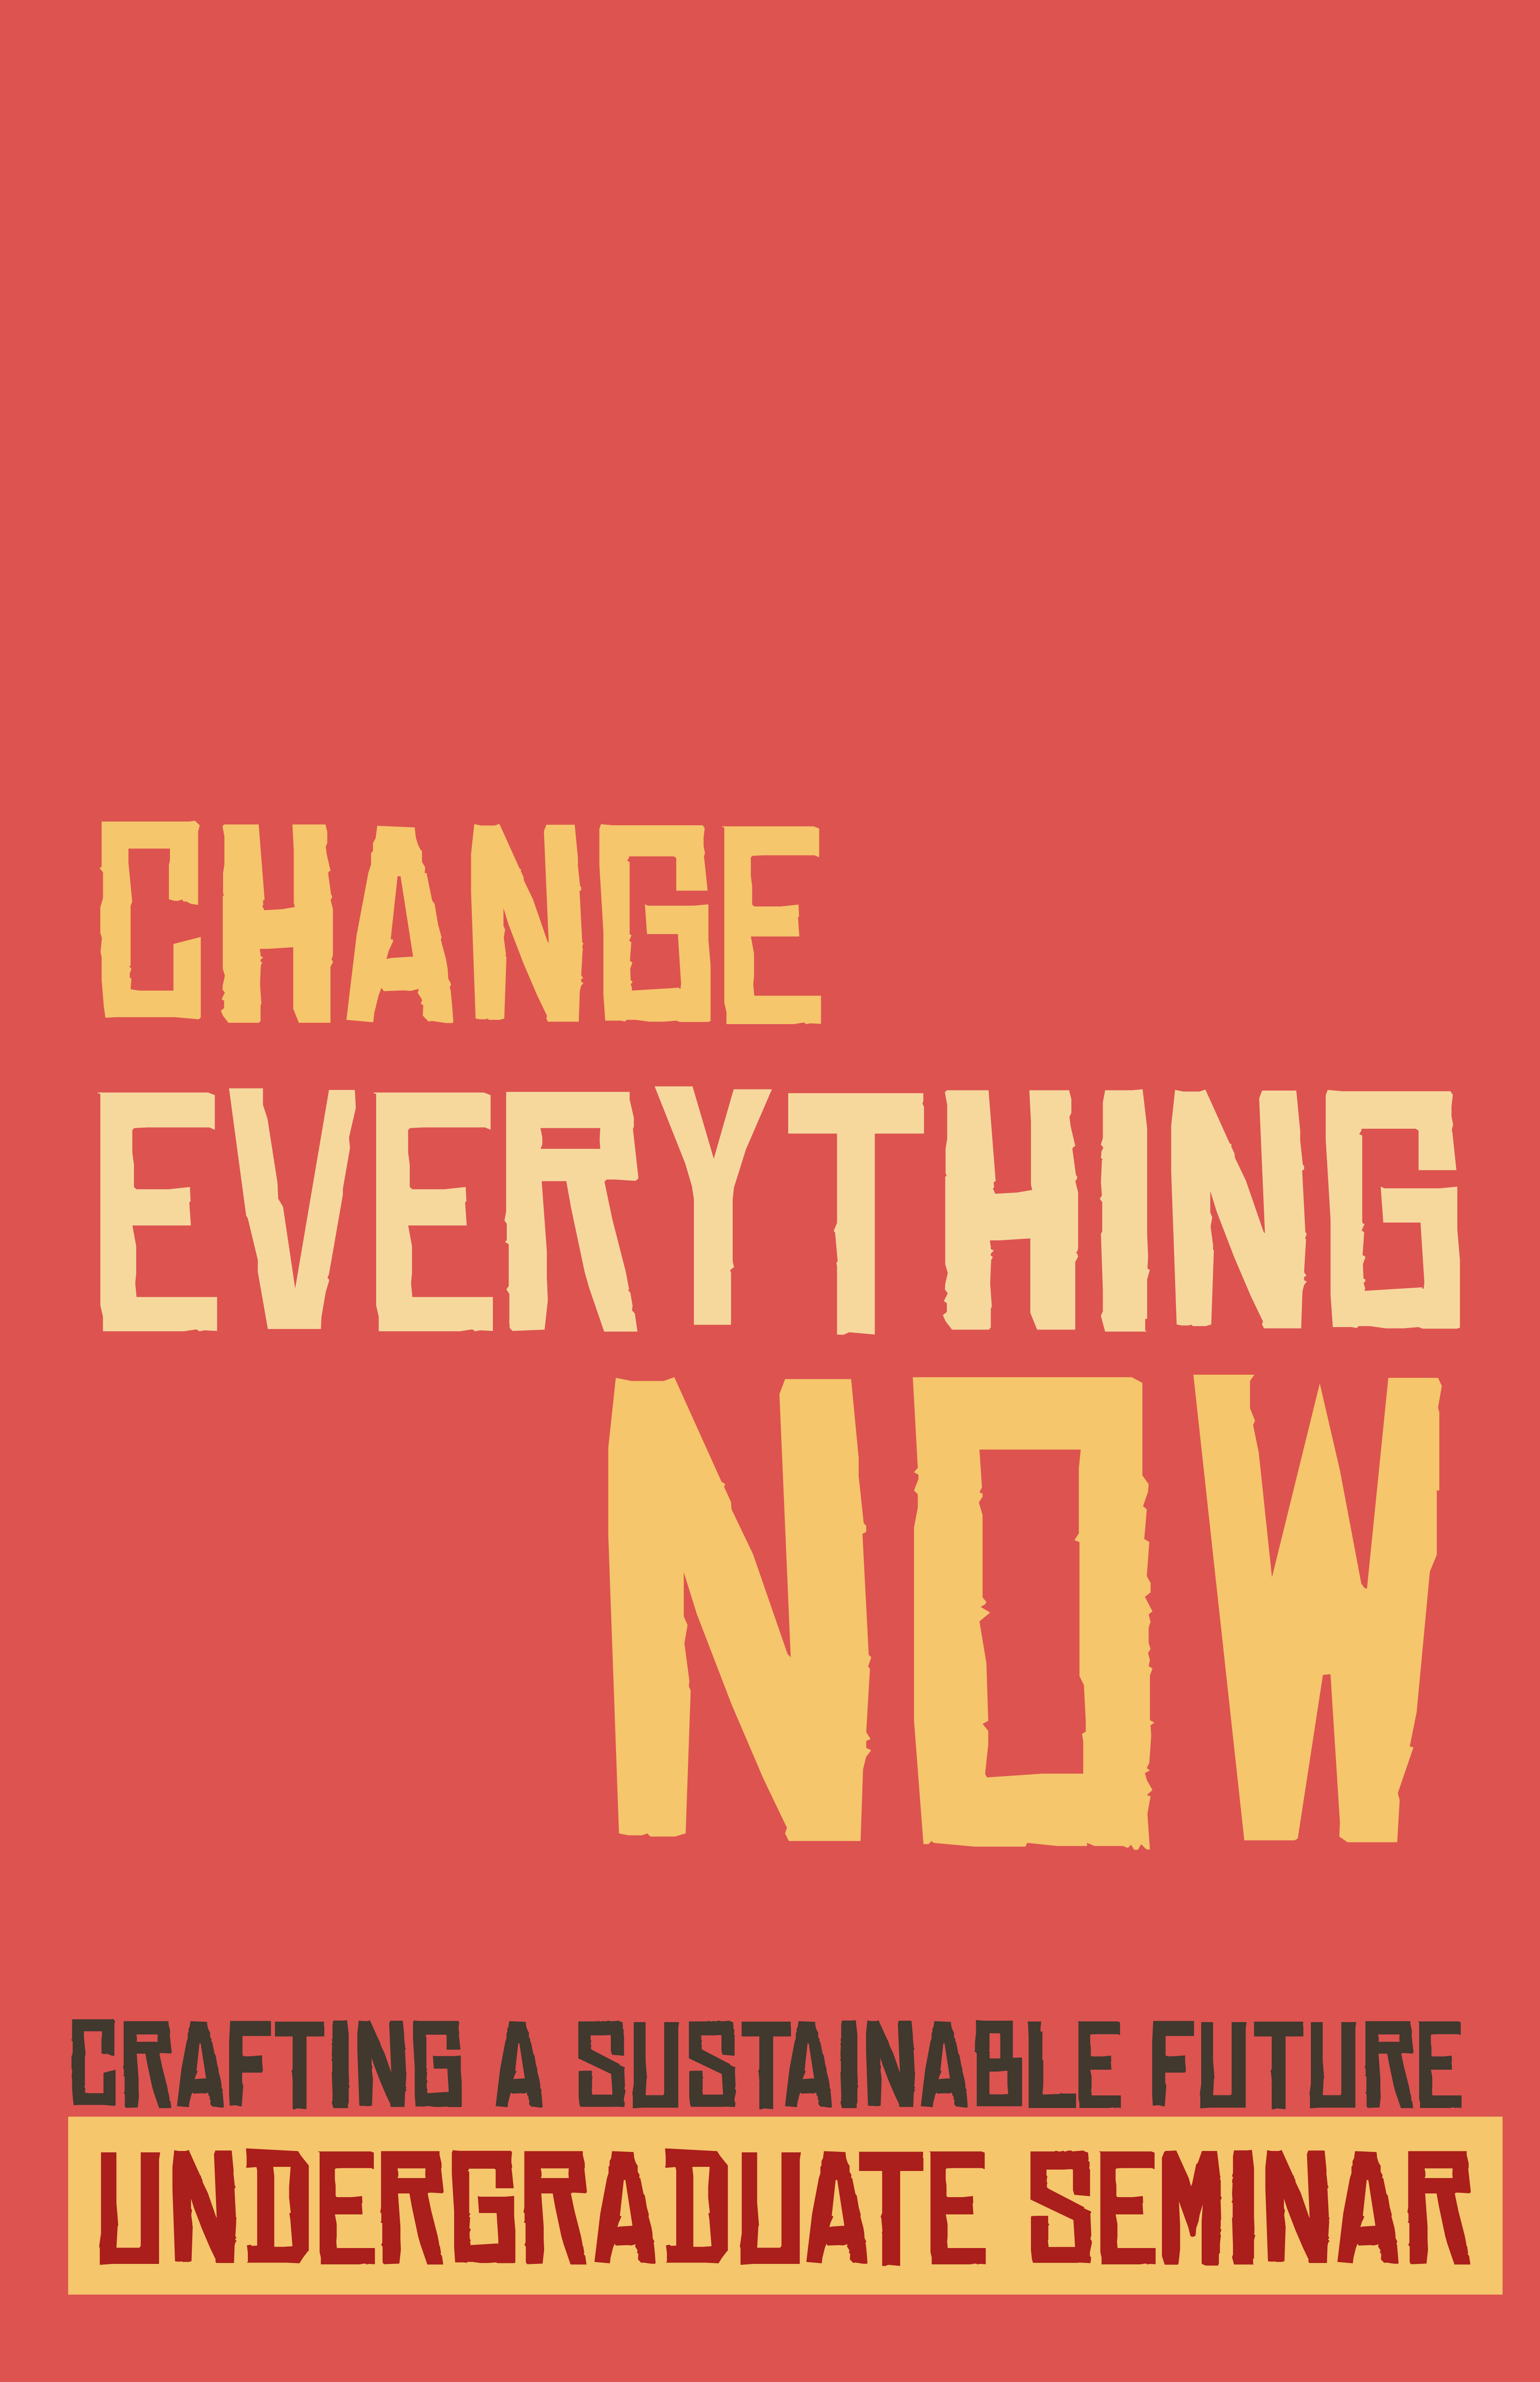 Change everything 5